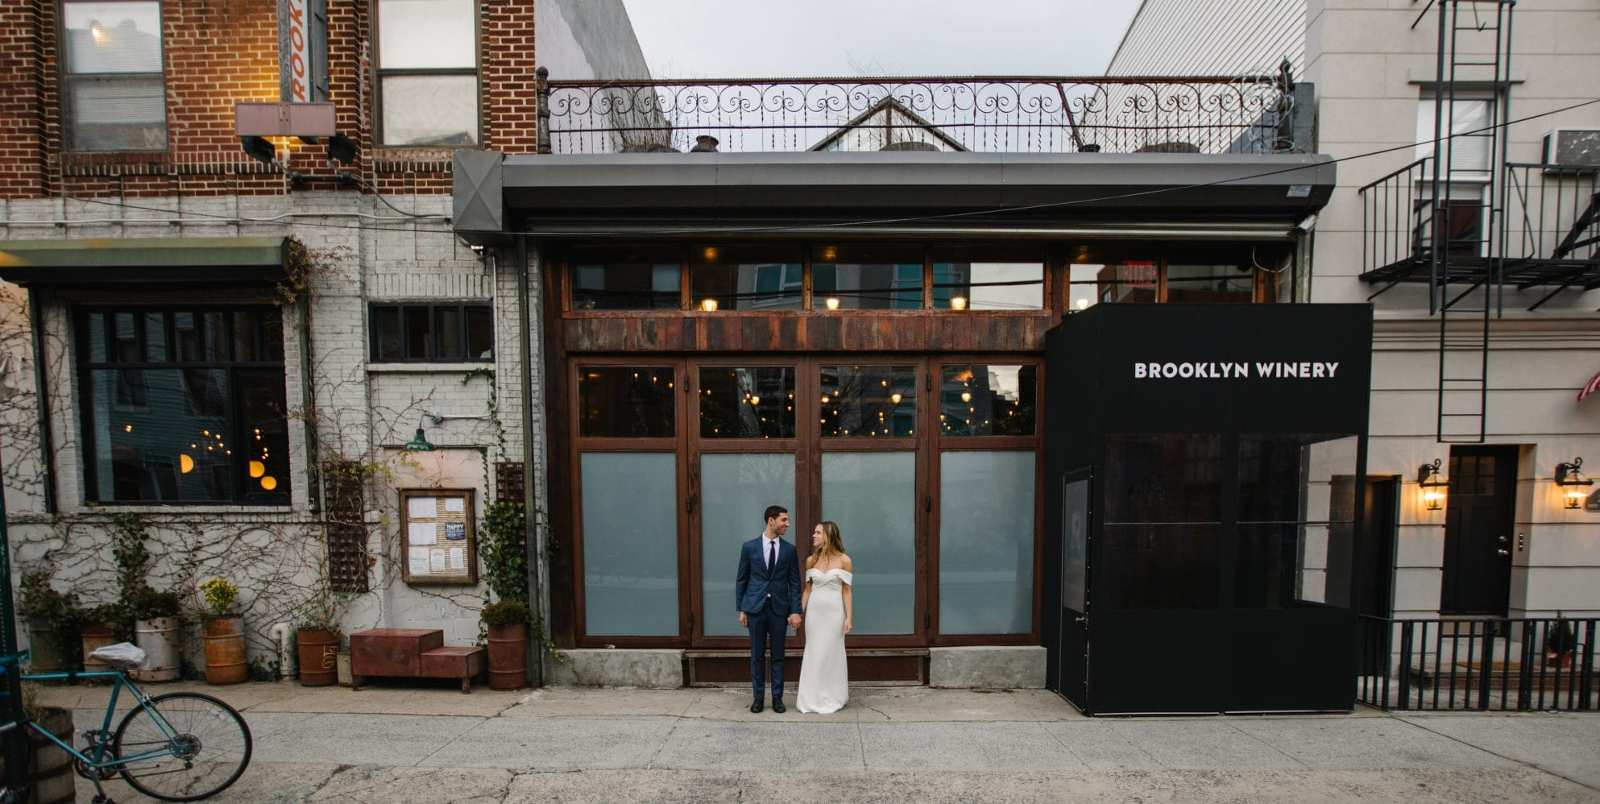 Brooklyn Winery Wedding Portrait